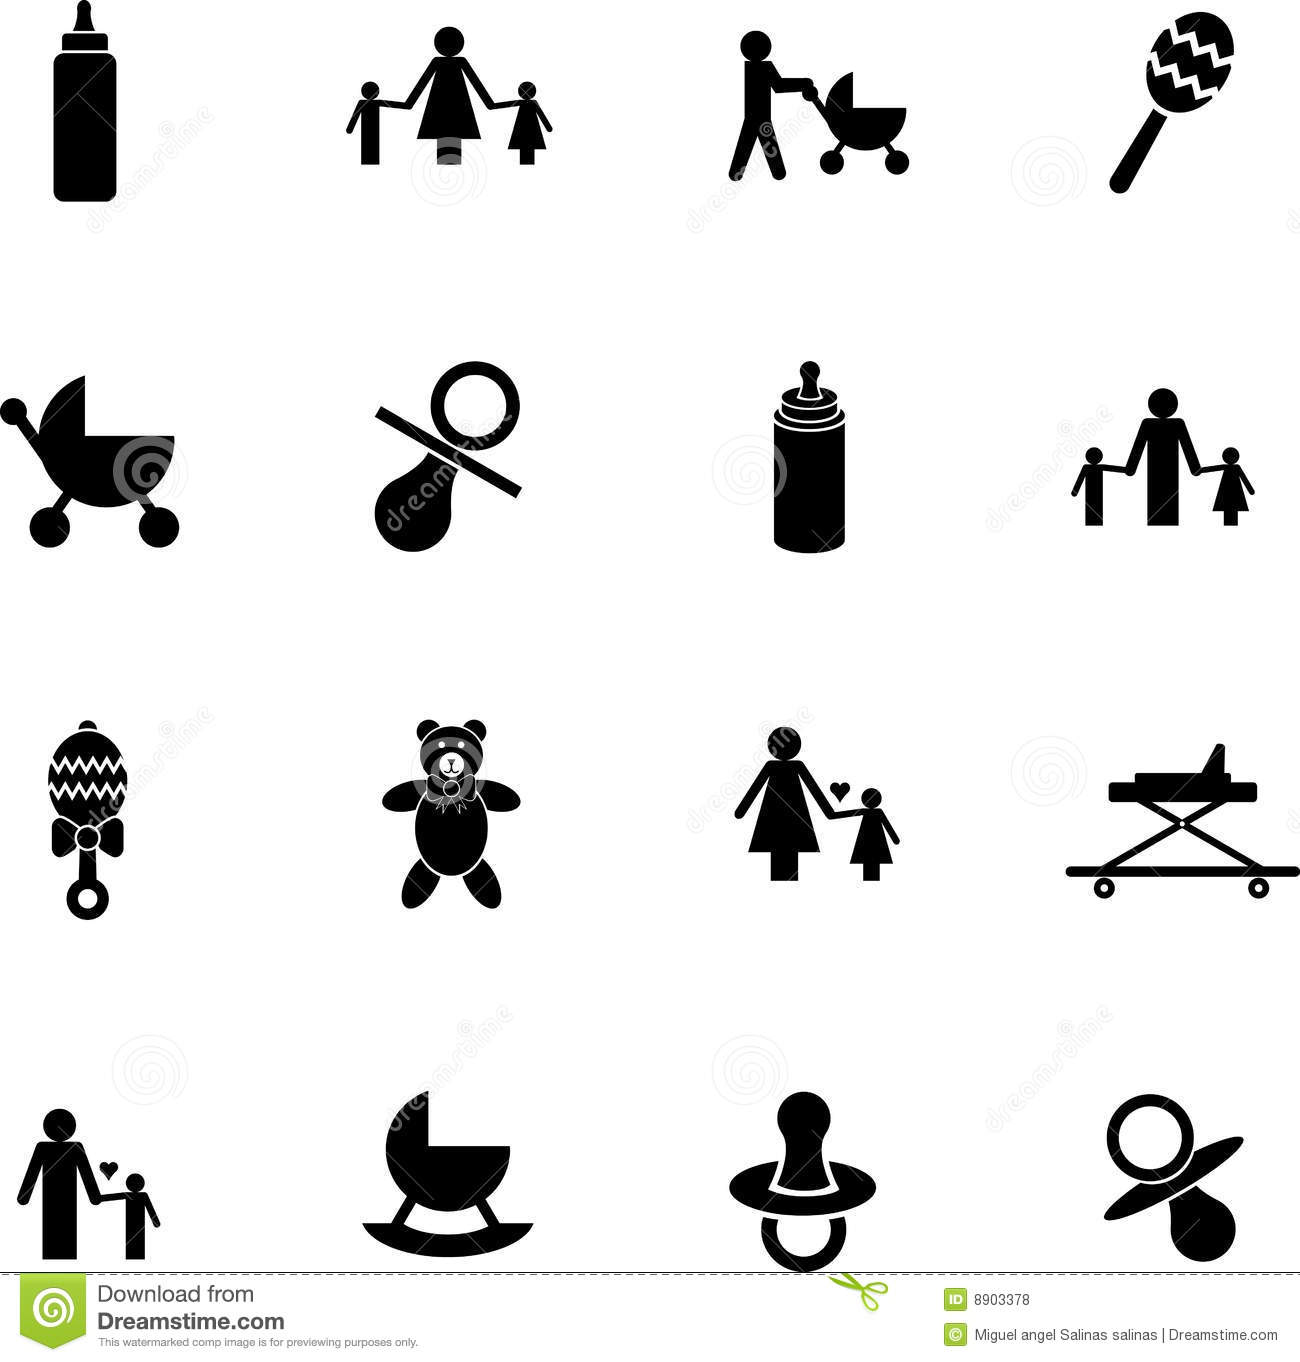 Baby Silhouettes Items Stock Vector Illustration Of Bowl 8229243